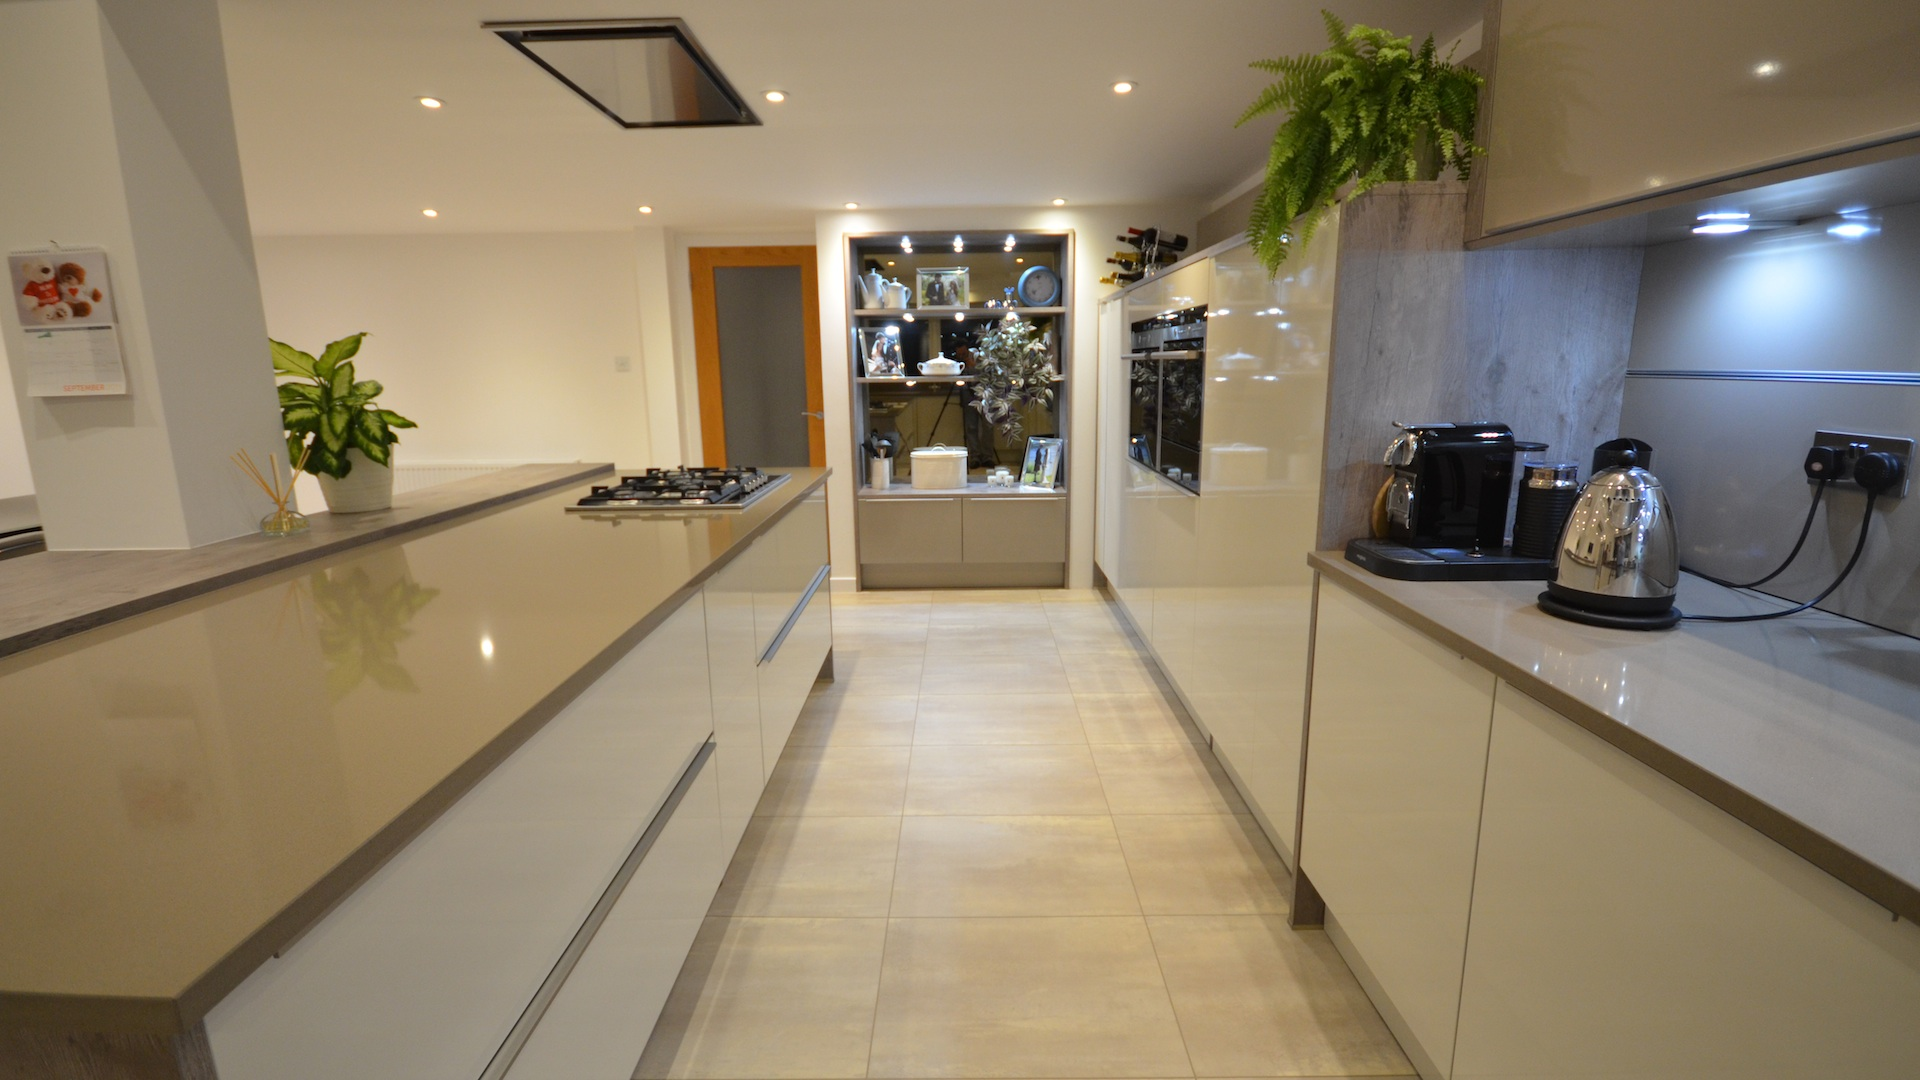 Image : Marion & Alan's New Kitchen